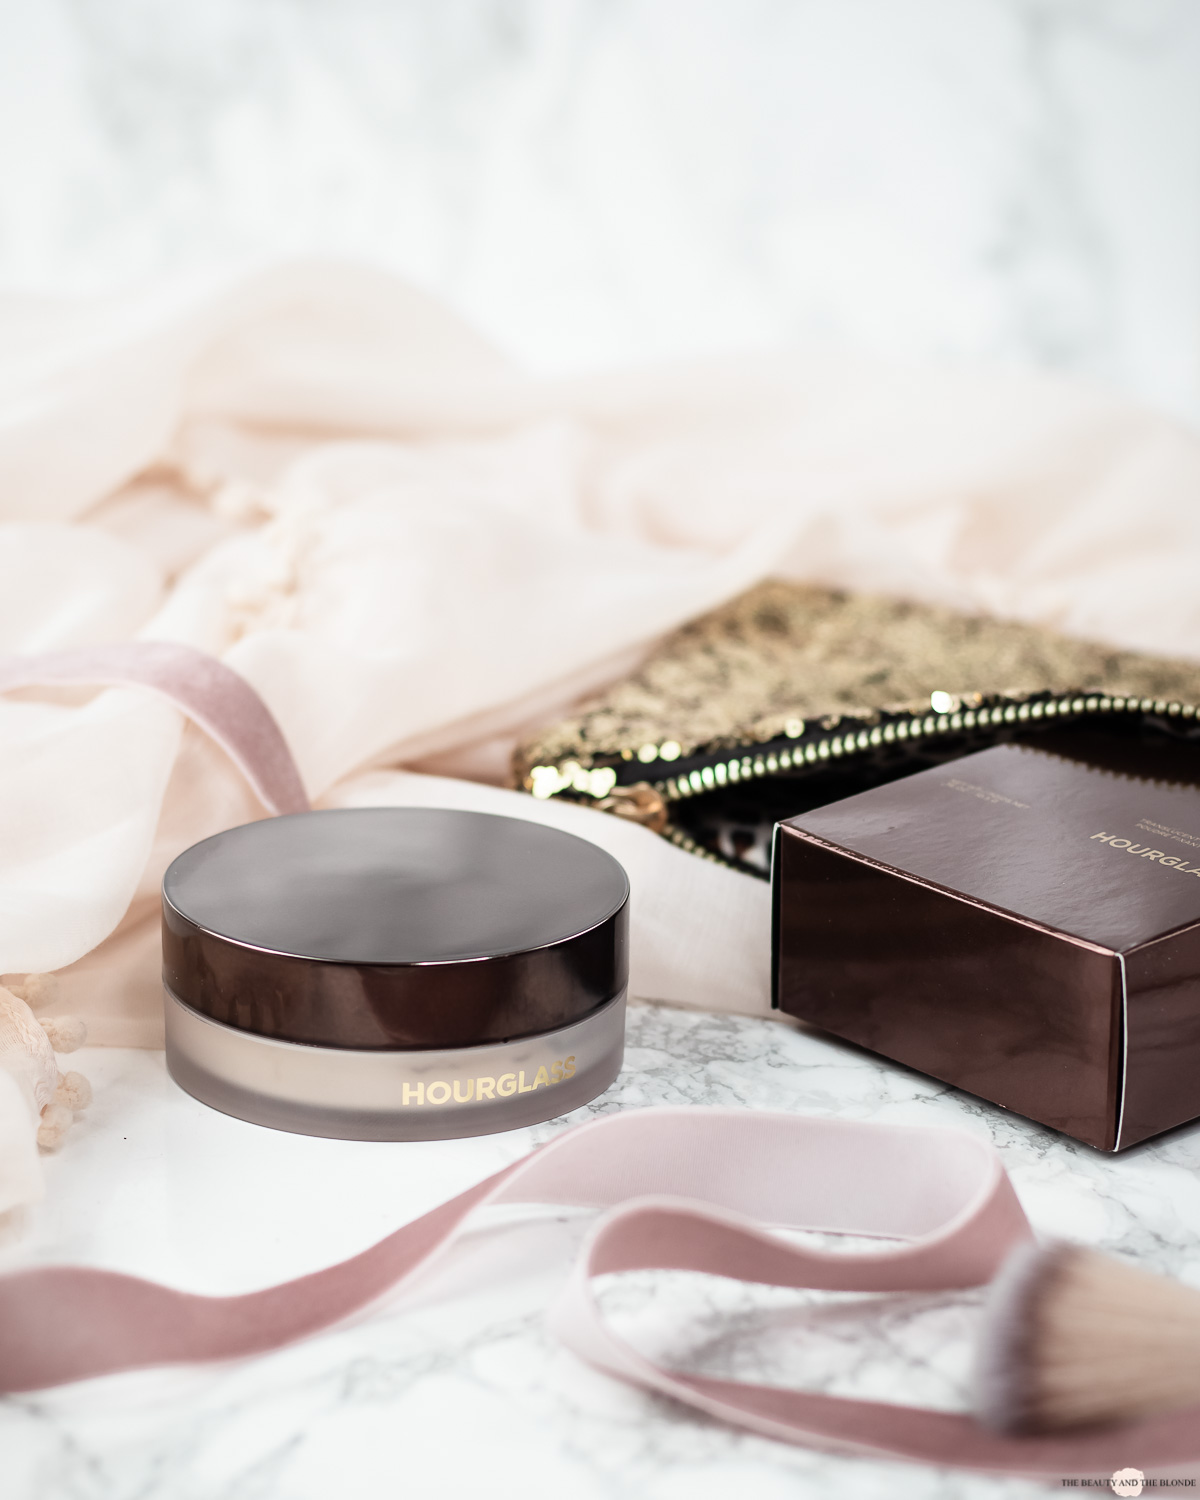 Hourglass Veil Translucent Setting Powder Puder Review Highend Makeup